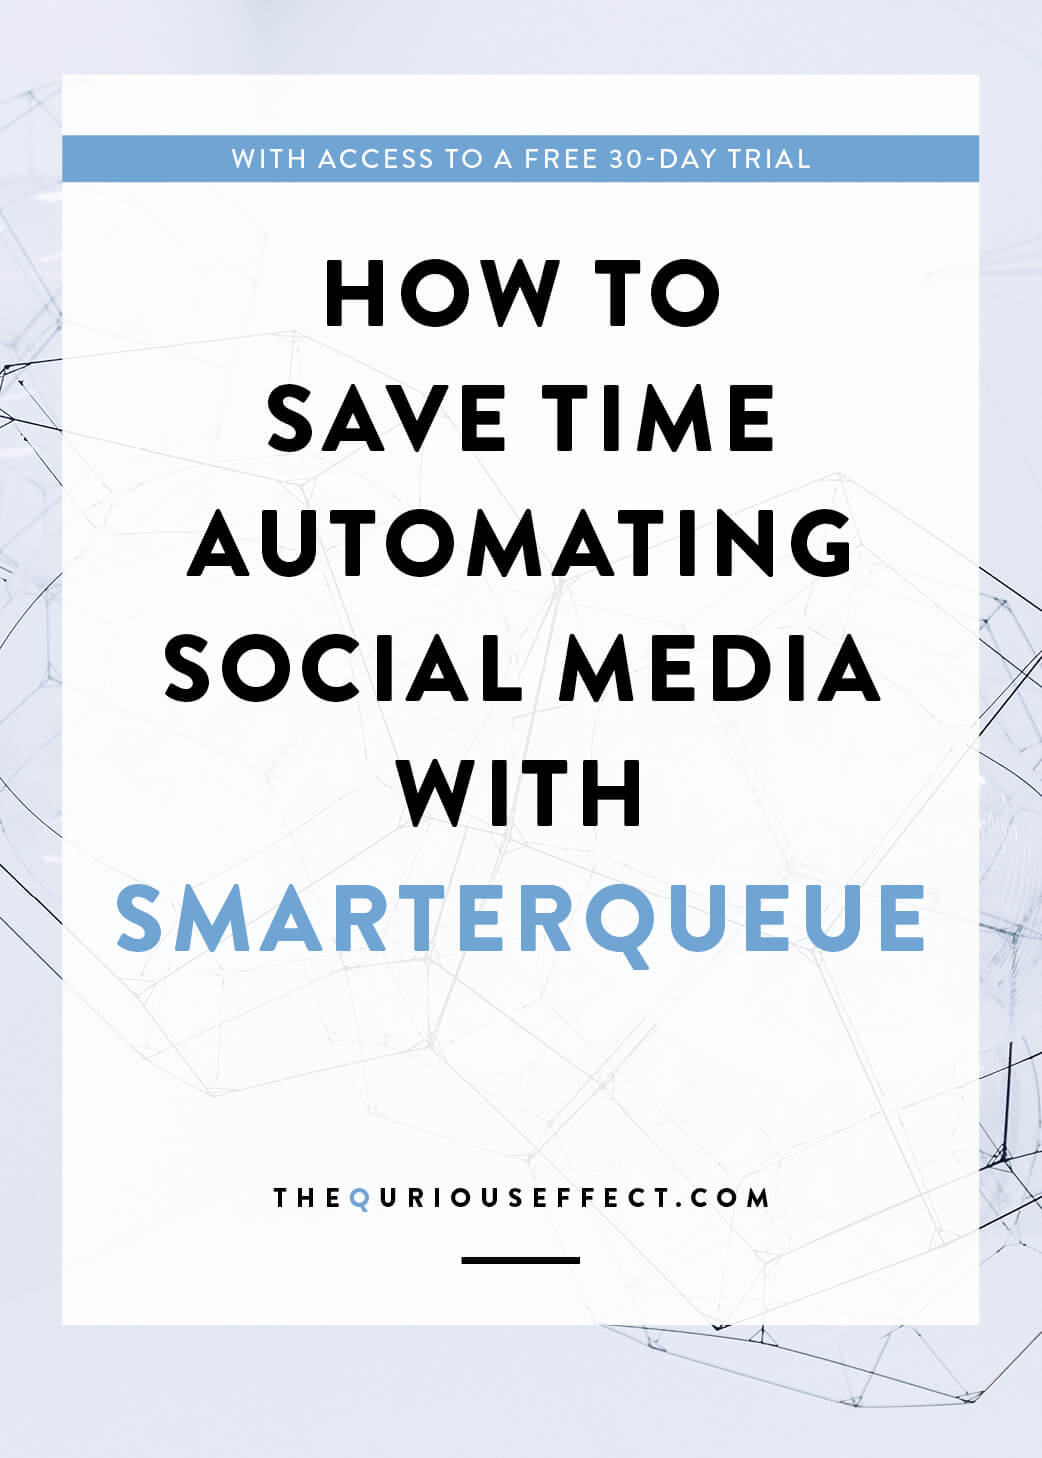 How to save time automating social media with SmarterQueue by The Qurious Effect, a brand and squarespace web designer